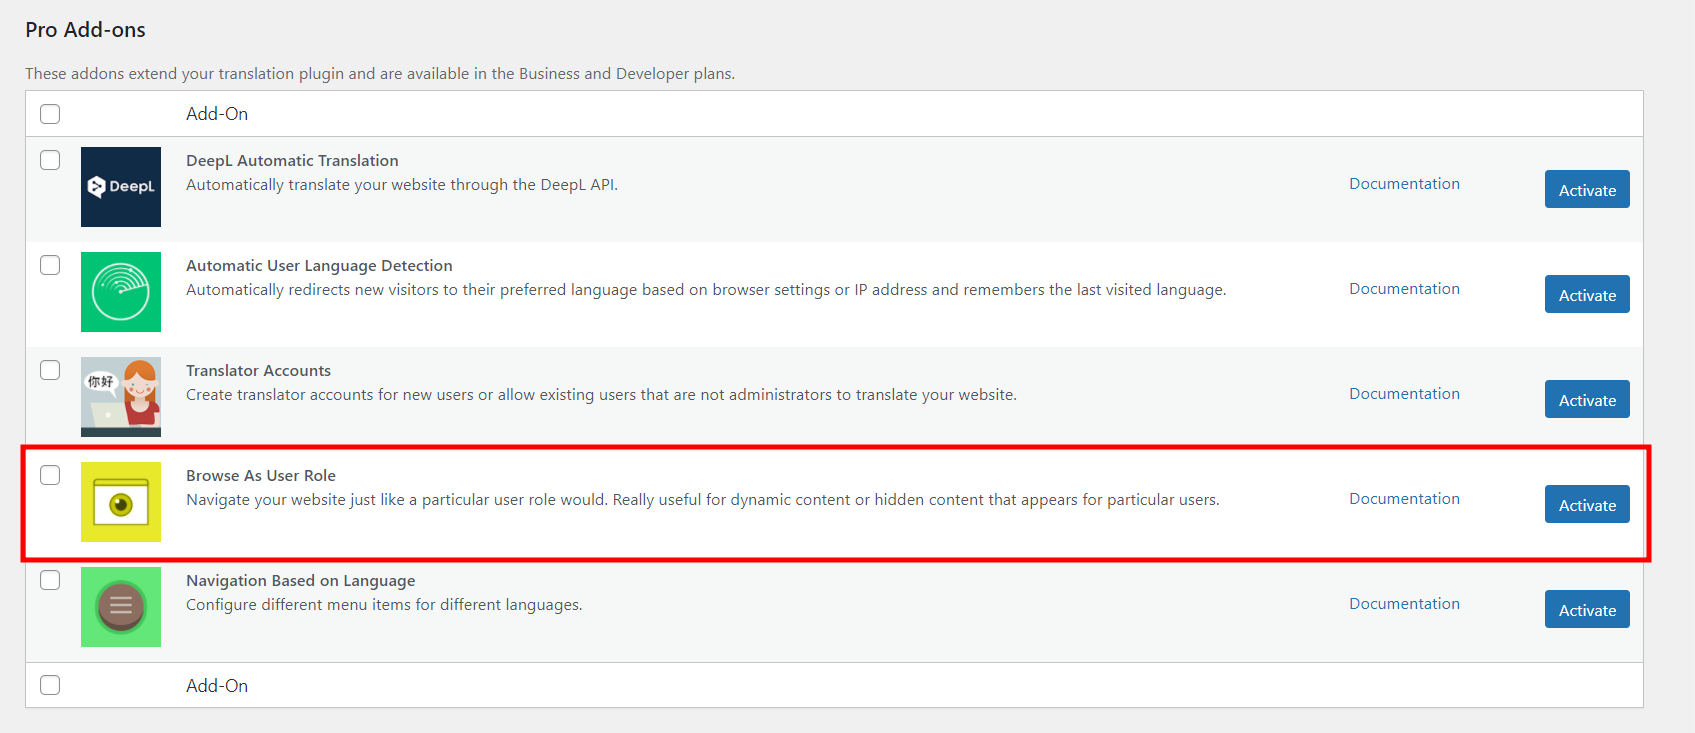 Browse as User Roles Add-on